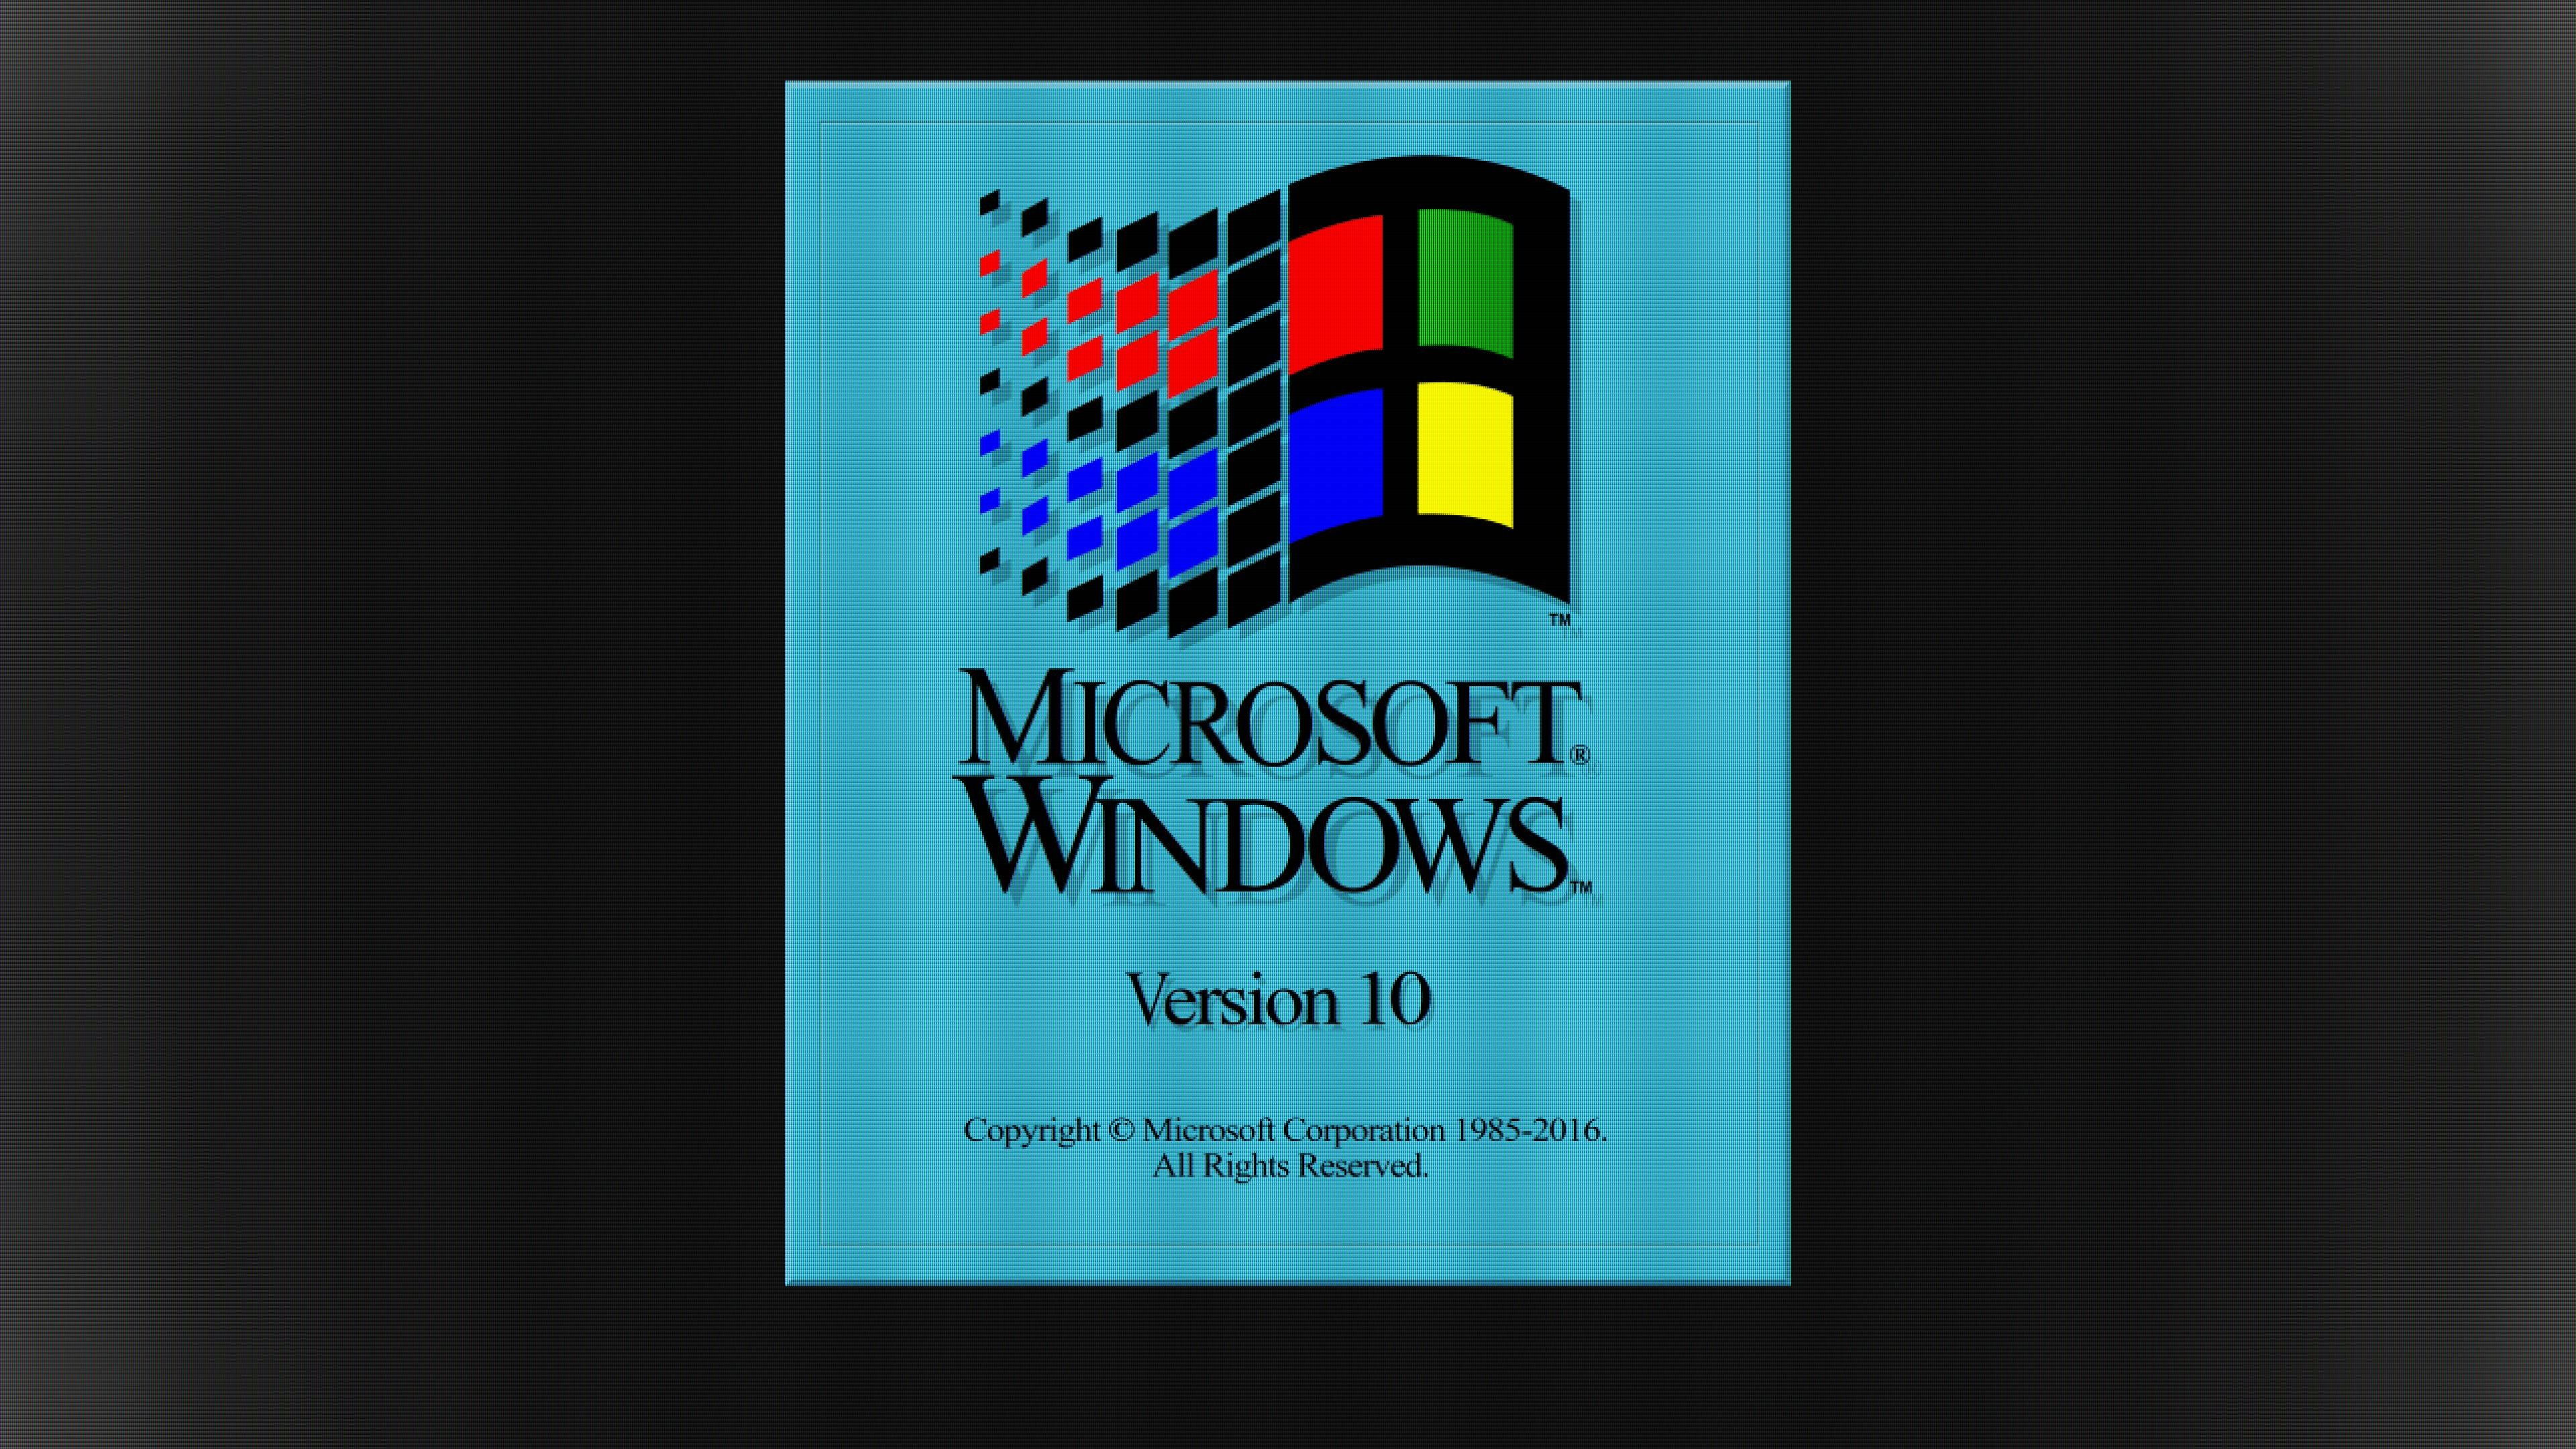 Windows Wallpapers, Photos And Desktop Backgrounds Up To